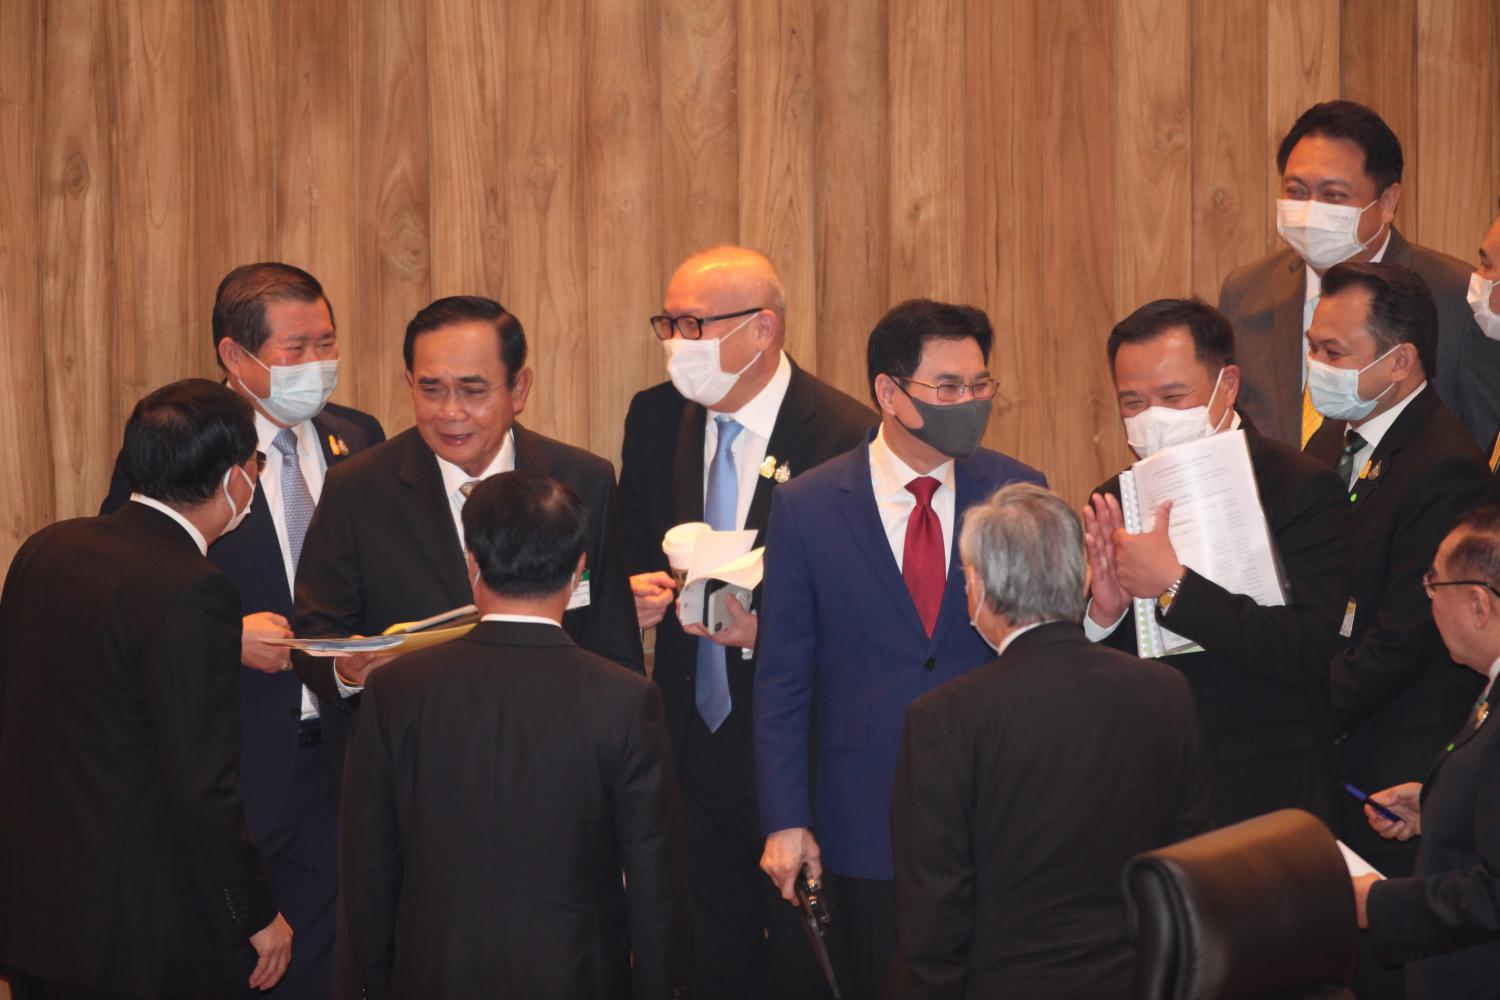 Prime Minister Prayut Chan-o-cha and other cabinet ministers targeted for the censure grilling greet each other in the chamber after they survived the no-confidence motion yesterday. The vote followed a four-day debate which ended on Friday.